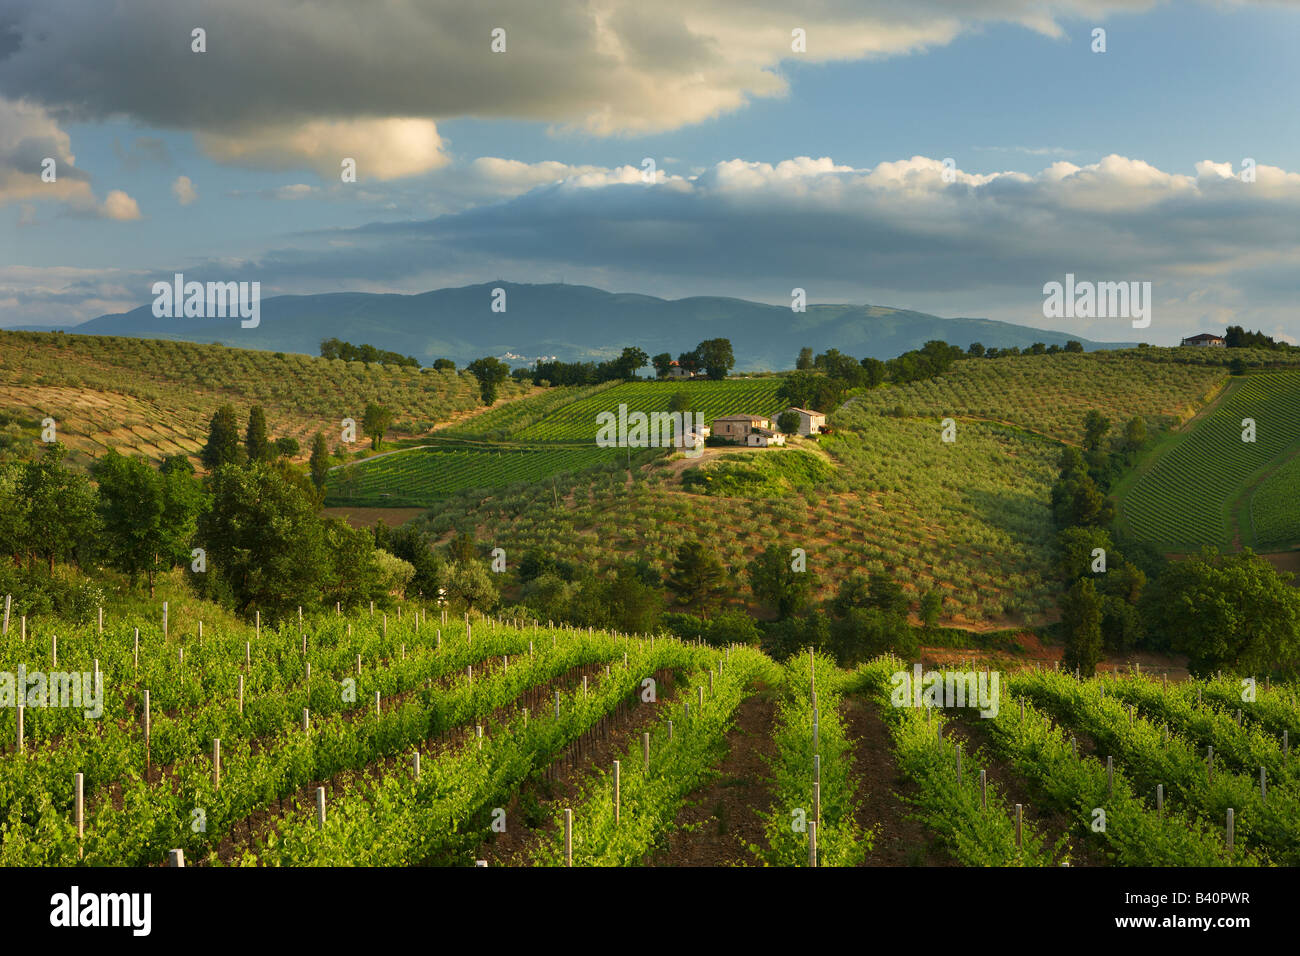 a vineyard near Montefalco in the Val di Spoleto, Umbria, Italy Stock Photo